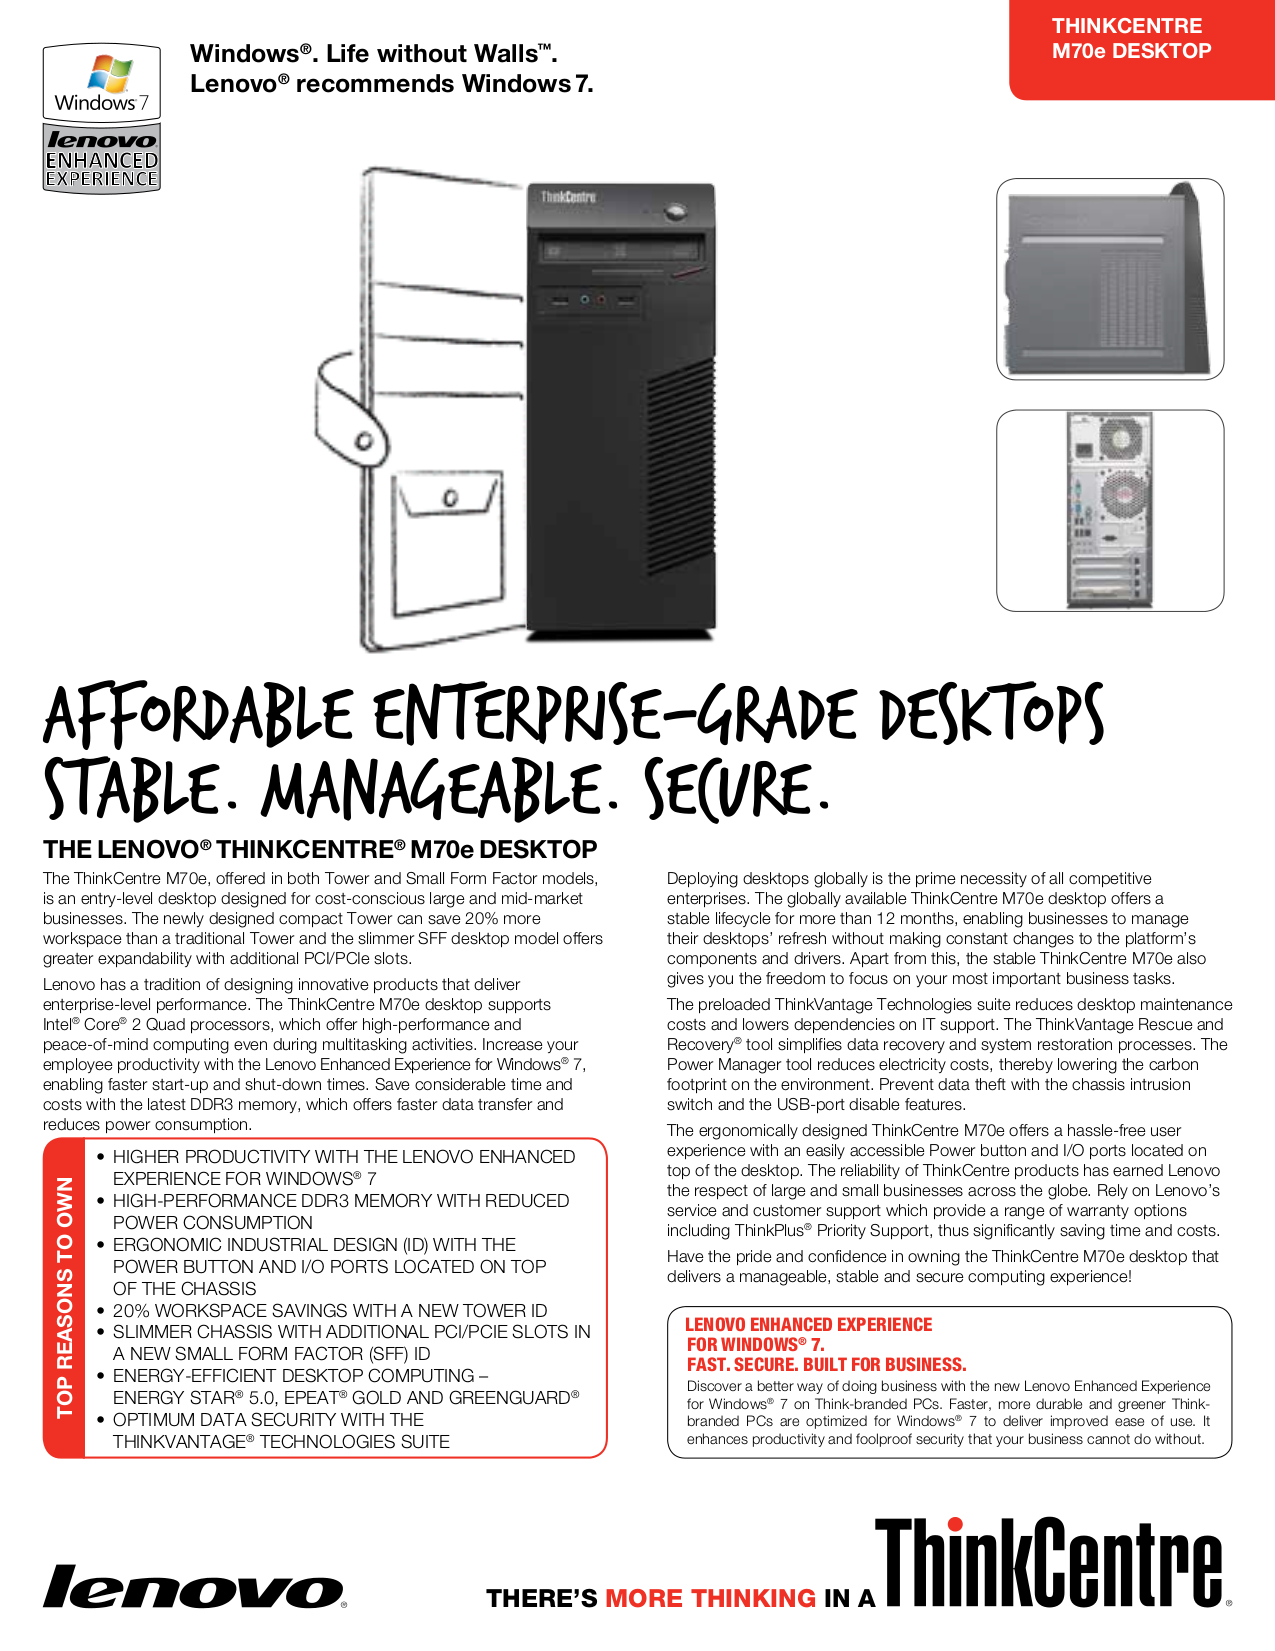 pdf for Lenovo Desktop ThinkCentre M70e 0833 manual